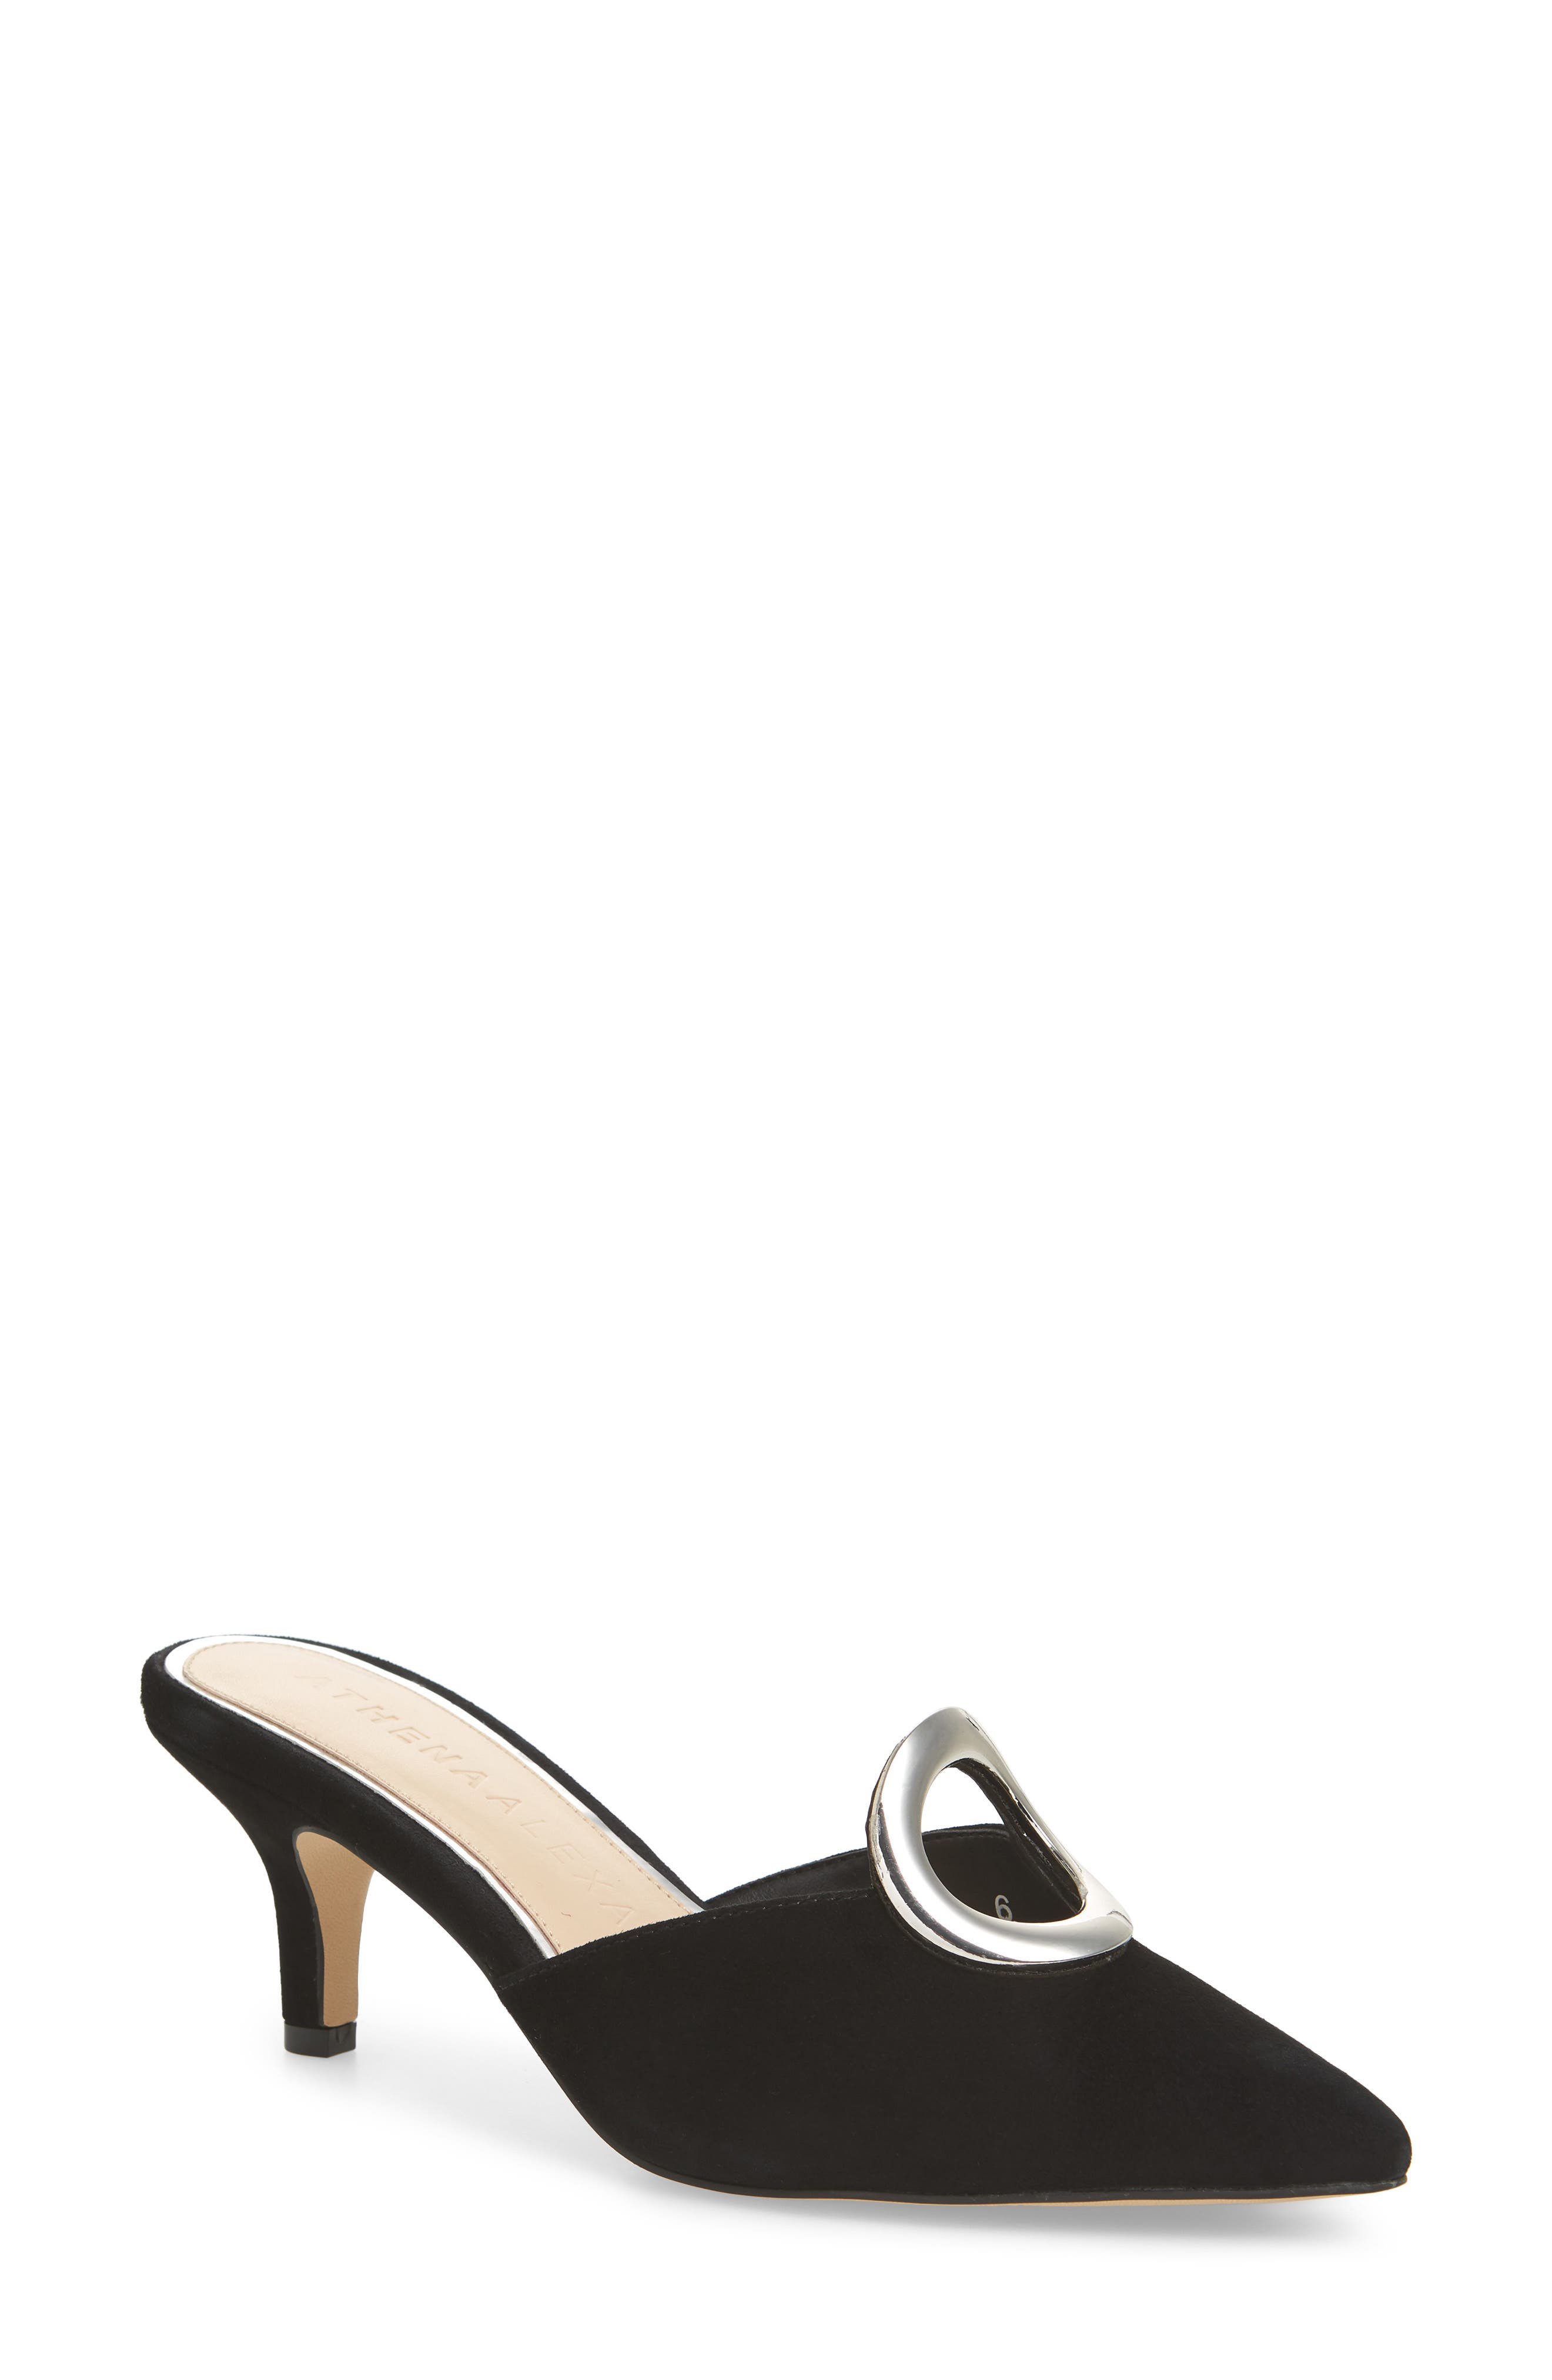 ATHENA ALEXANDER Pointy Toe Mule, Main, color, 003